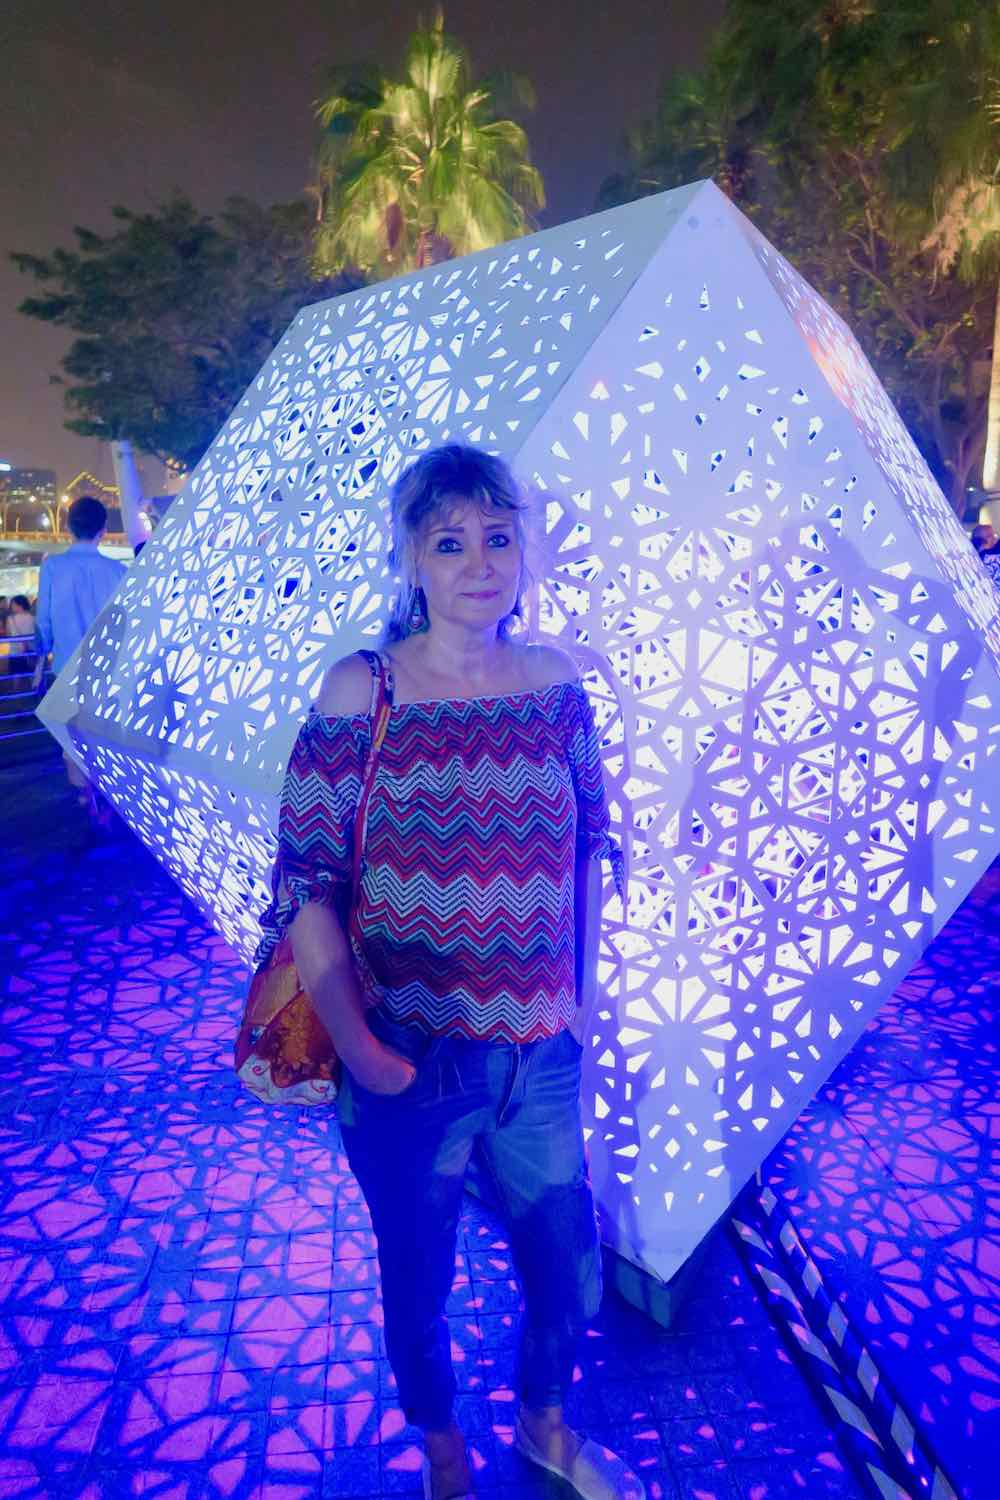 Woman in front of pretty lit cubes at iLightMarina Bay Singapore |curlytraveller.com